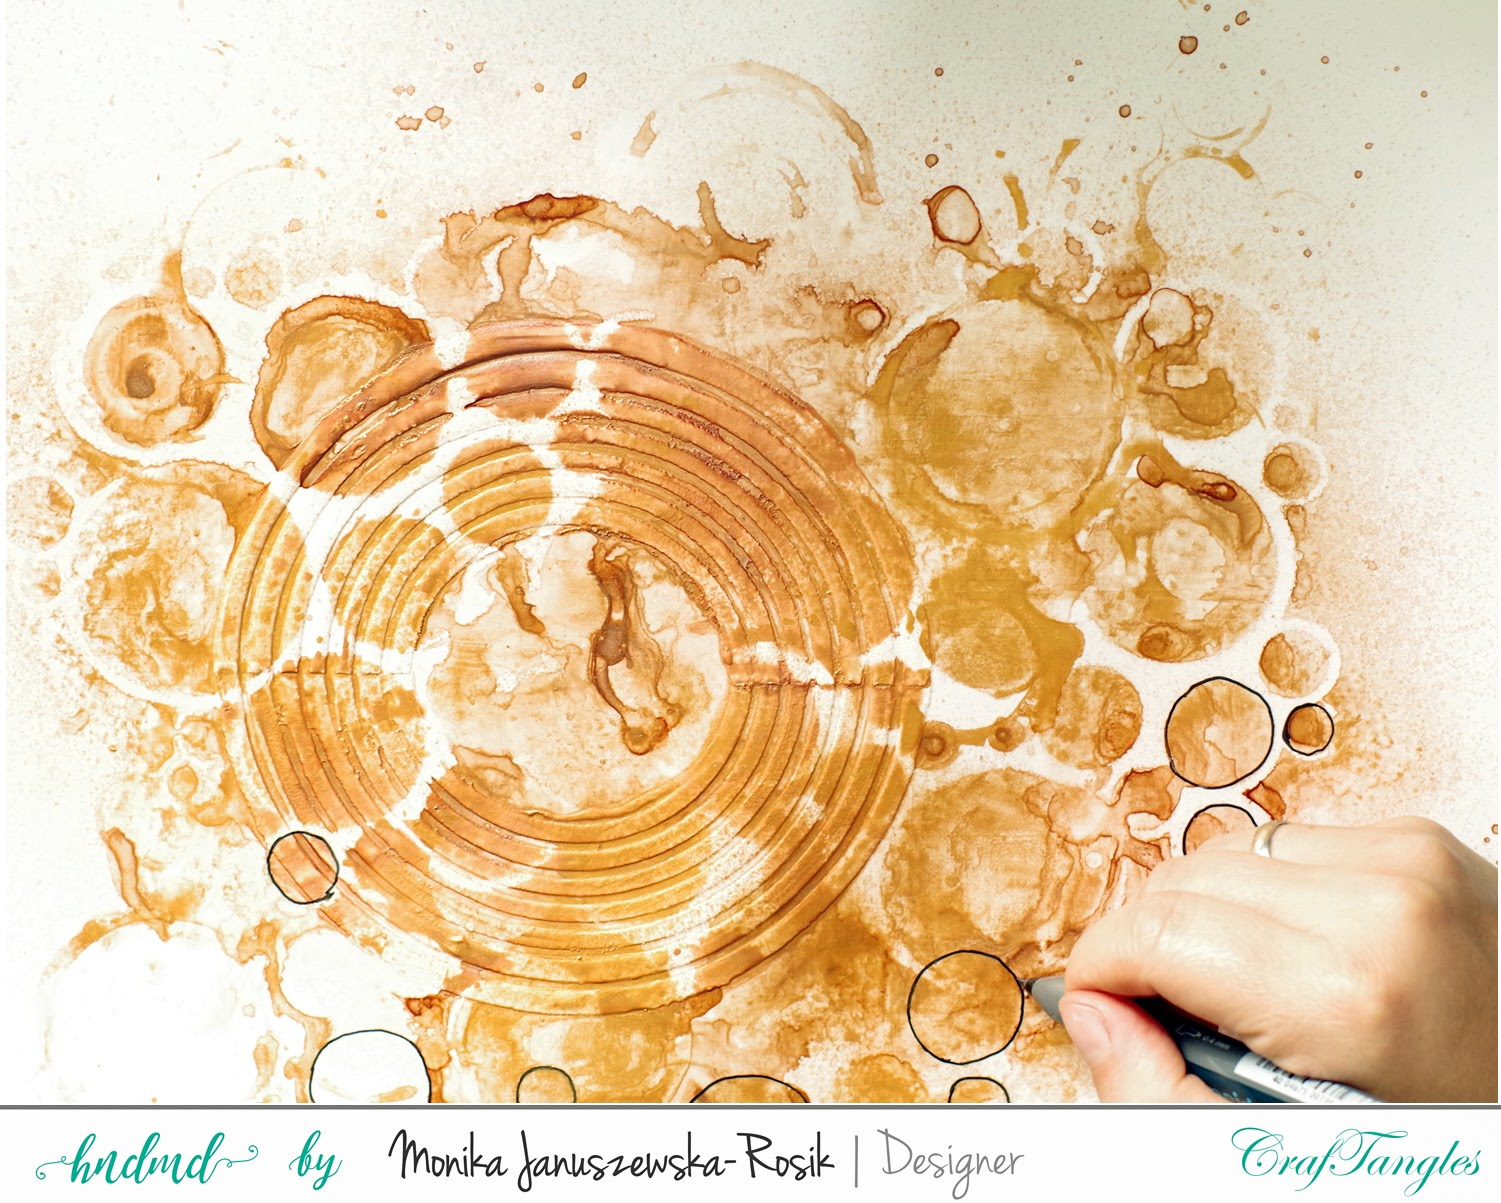 Mixed media Layout with CrafTangels stencils 9